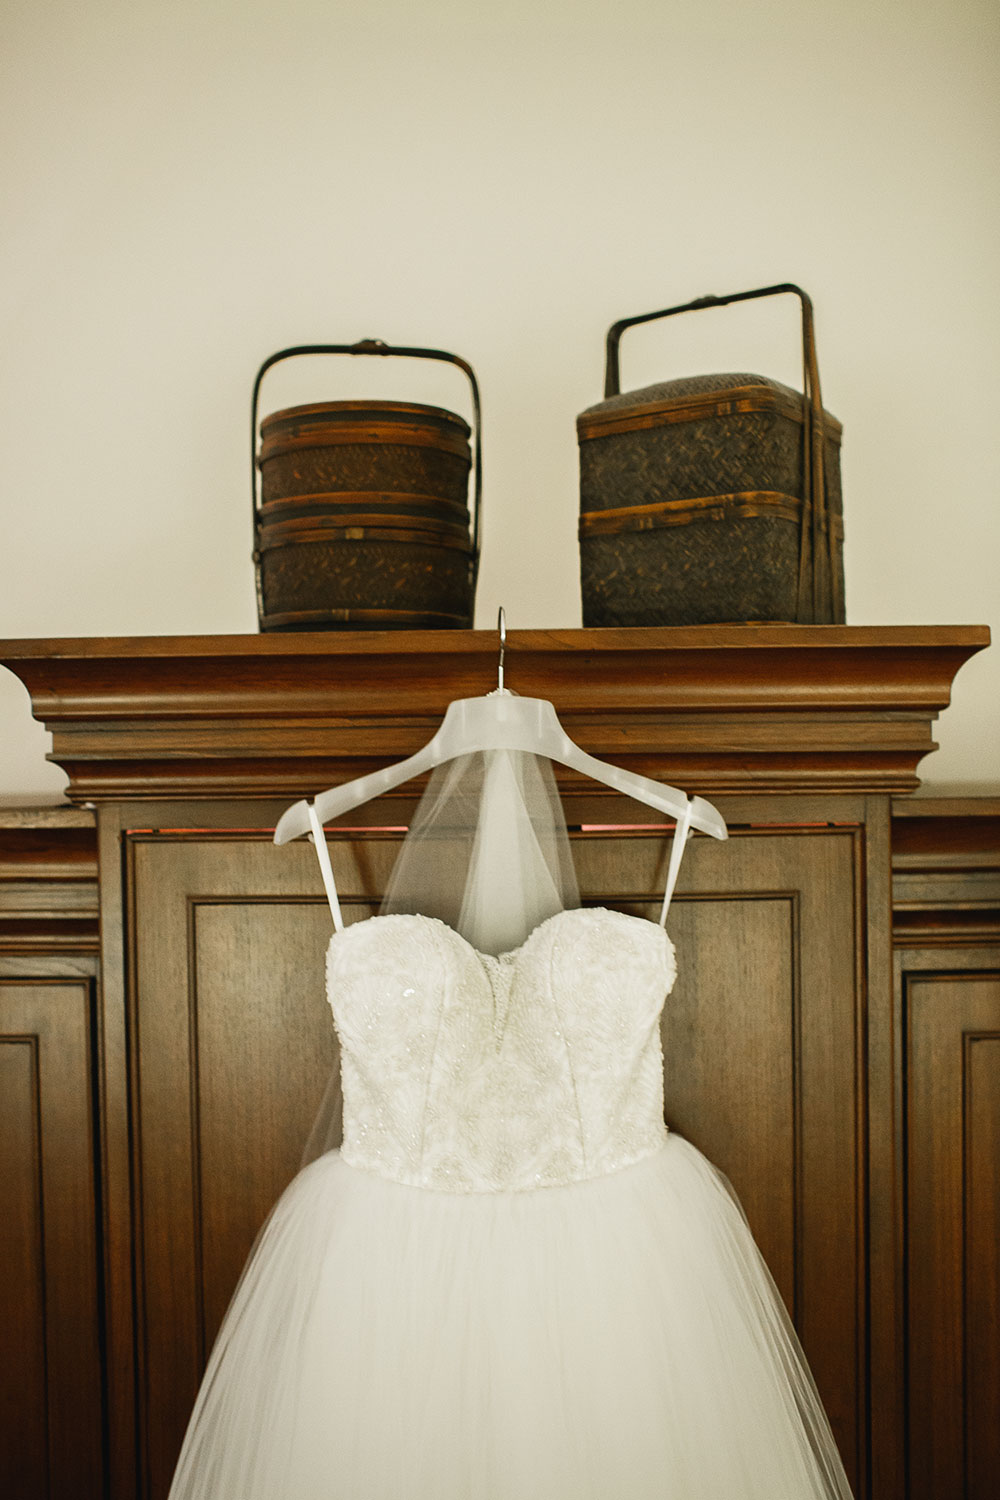 Singaore-Raffles-Hotel-Wedding-dress-close-up